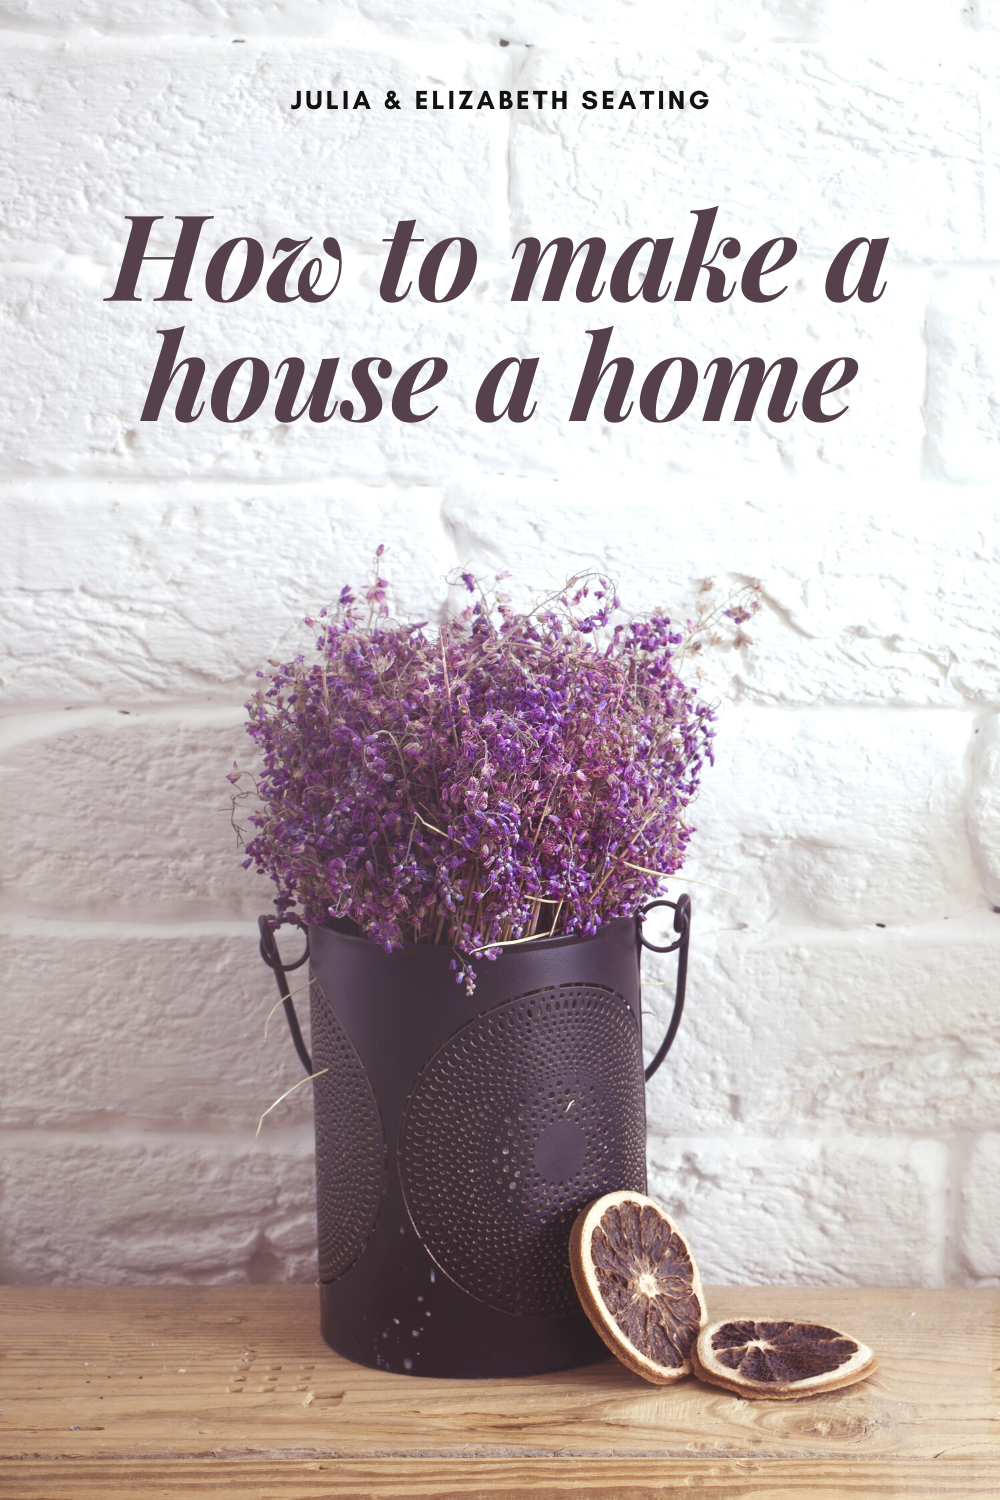 Looking to make your house more cozy? Check out our top 6 tips for how to make your house a home! #home #homedecor #homedecortips #homedecorinspiration #cozyhome #howtomakeahouseahome